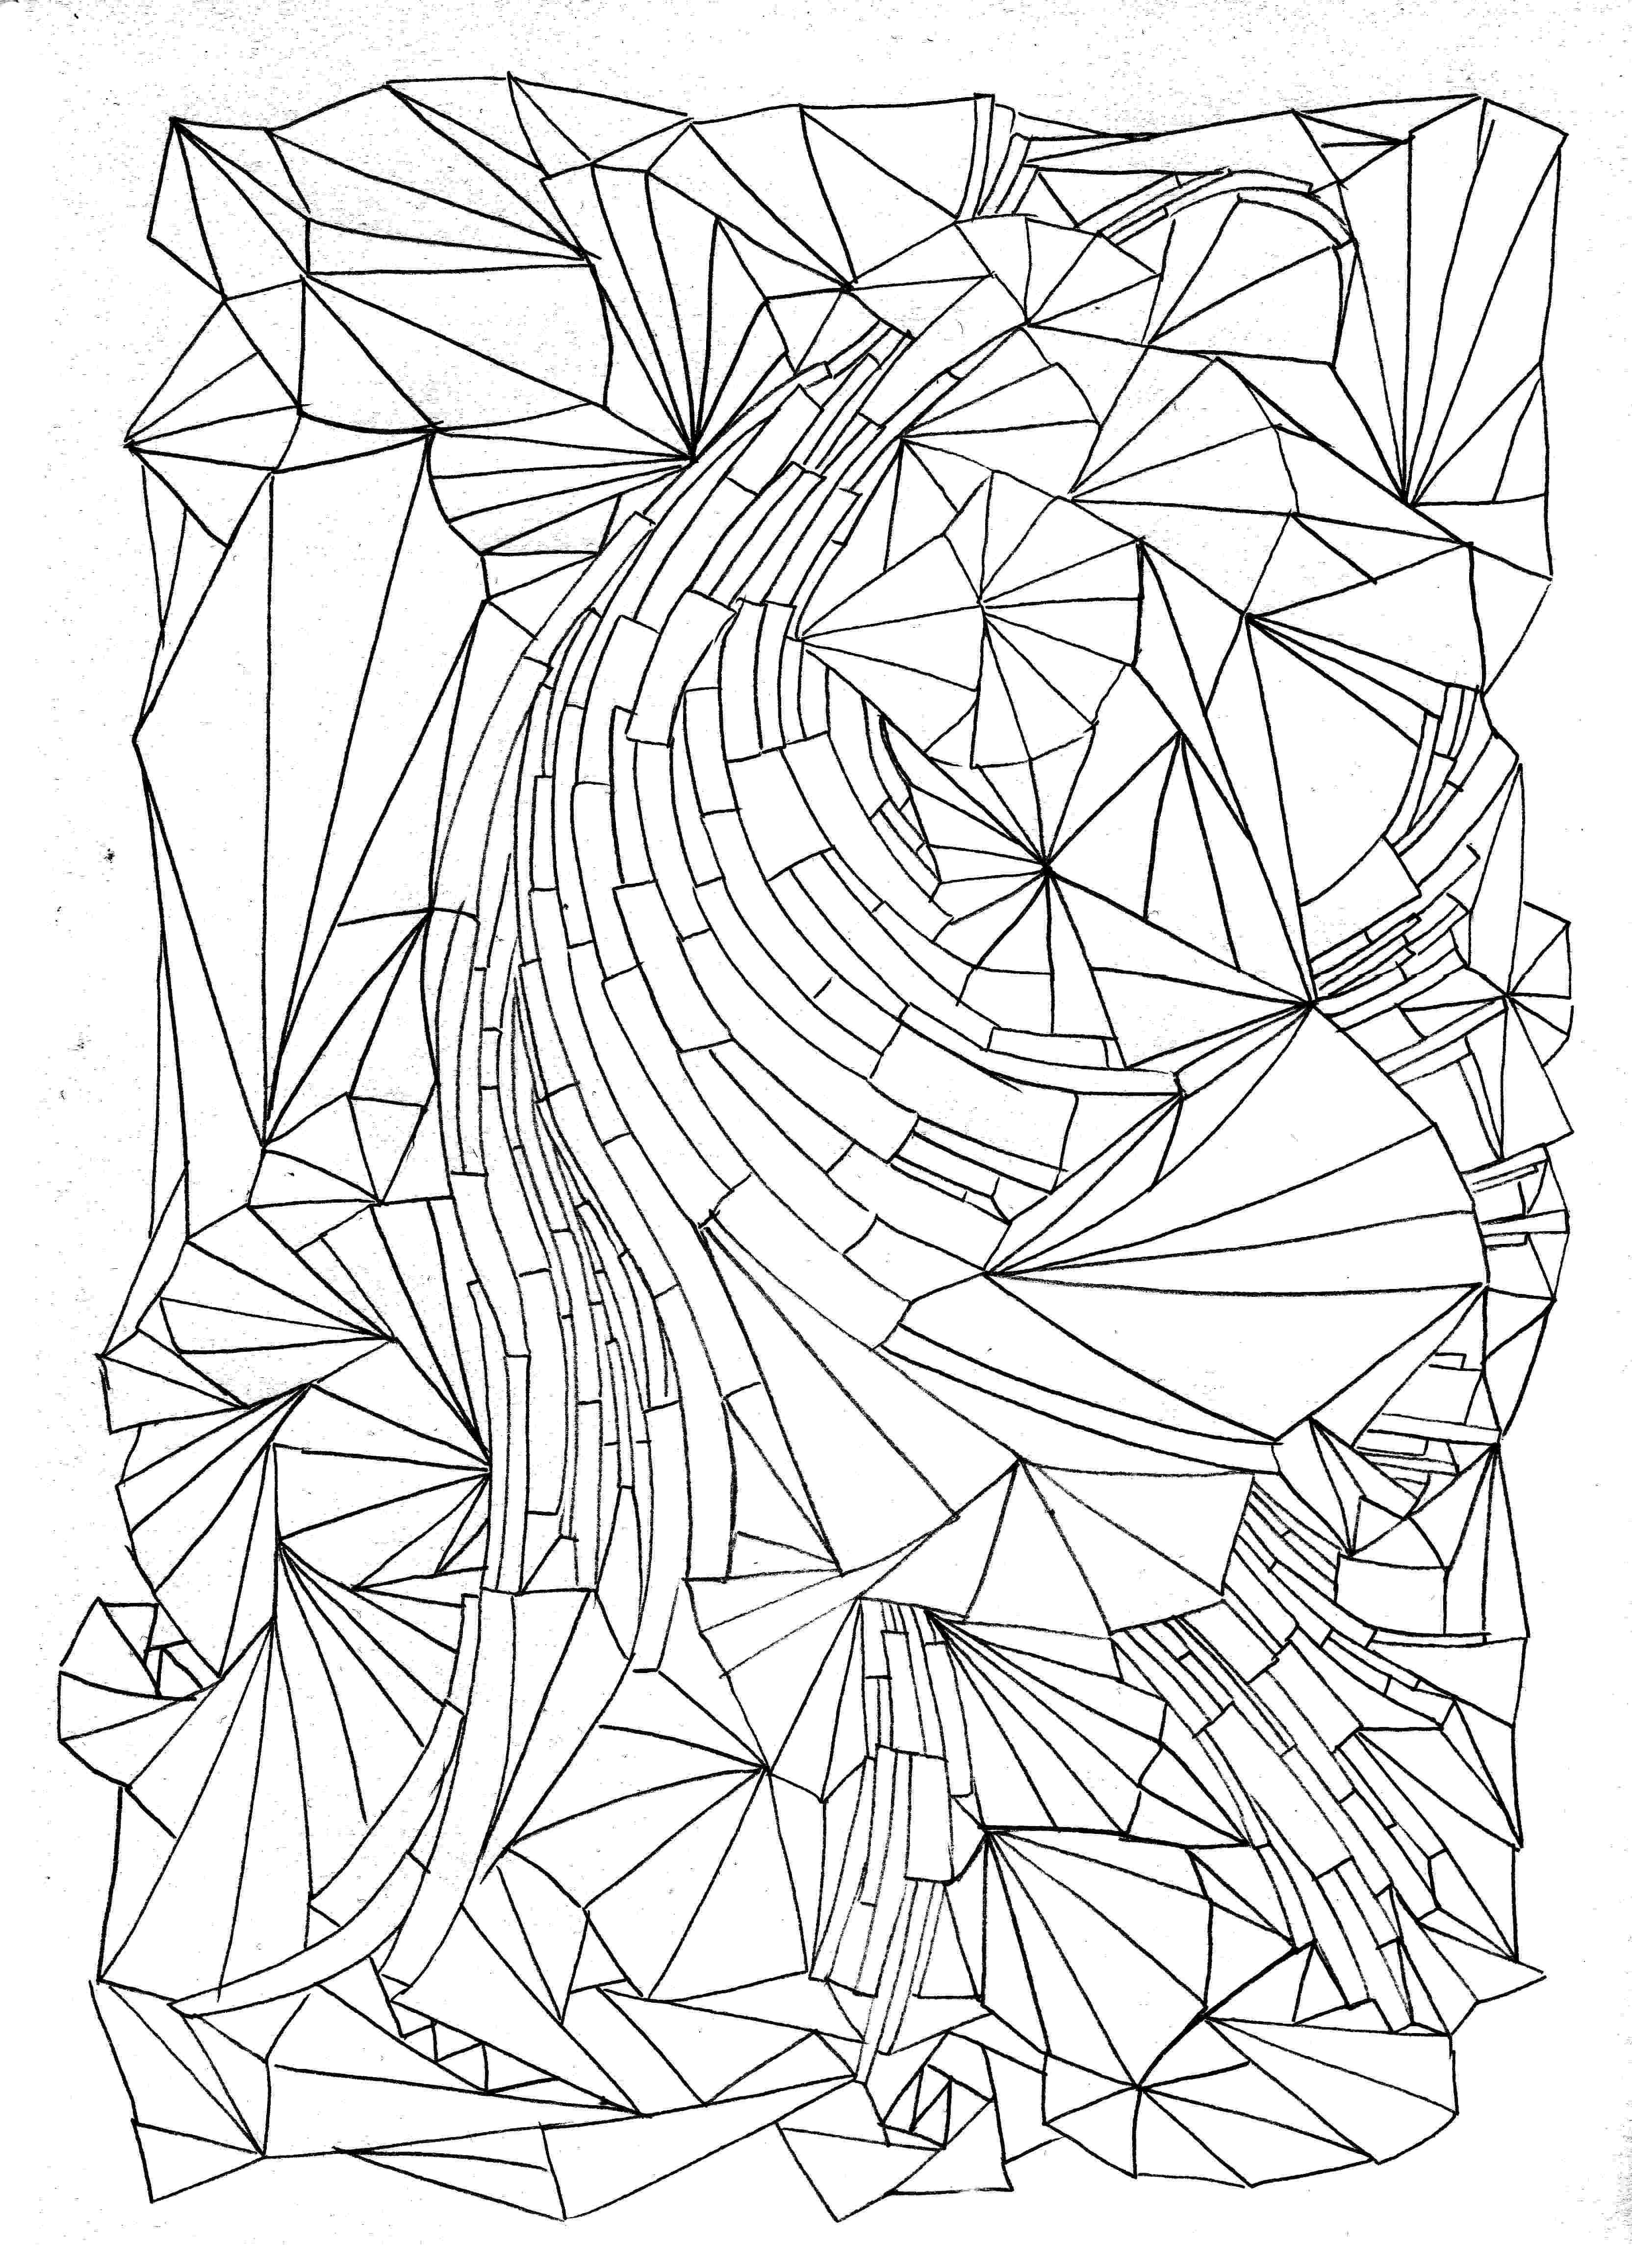 patterns coloring colouring designs thelinoprinter patterns coloring